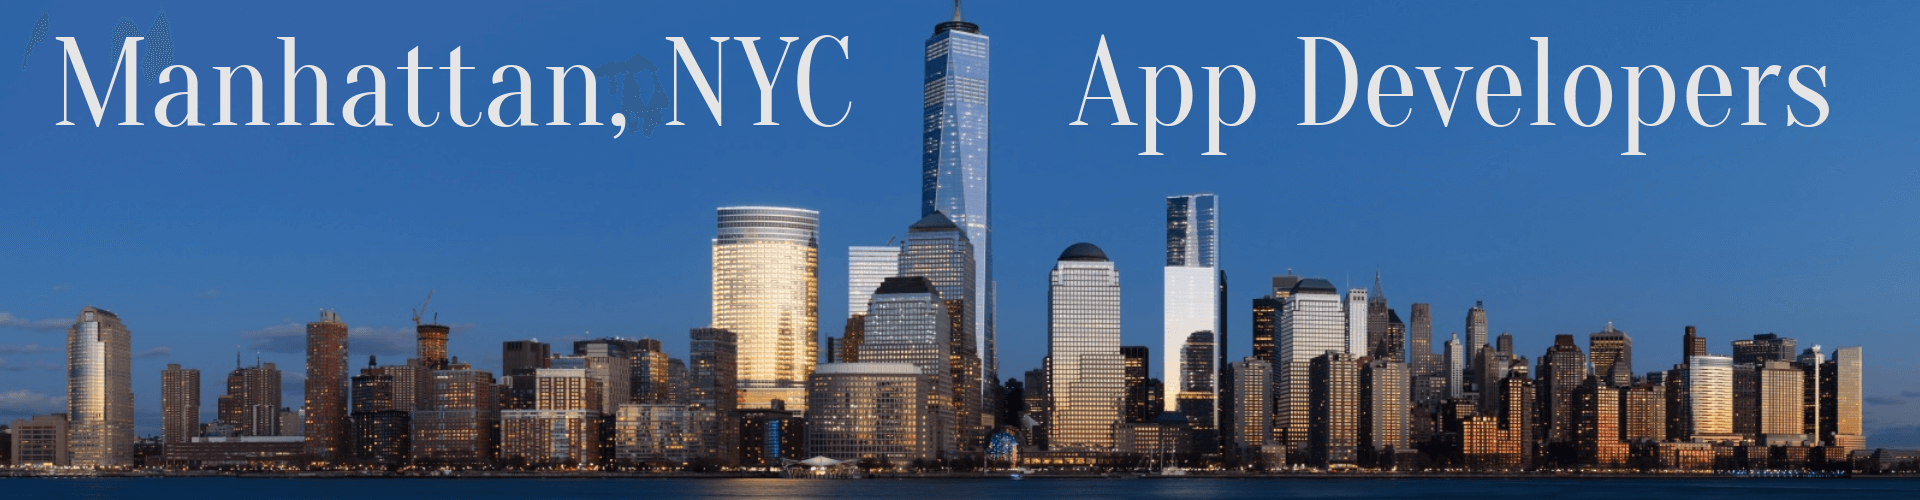 app developers manhattan